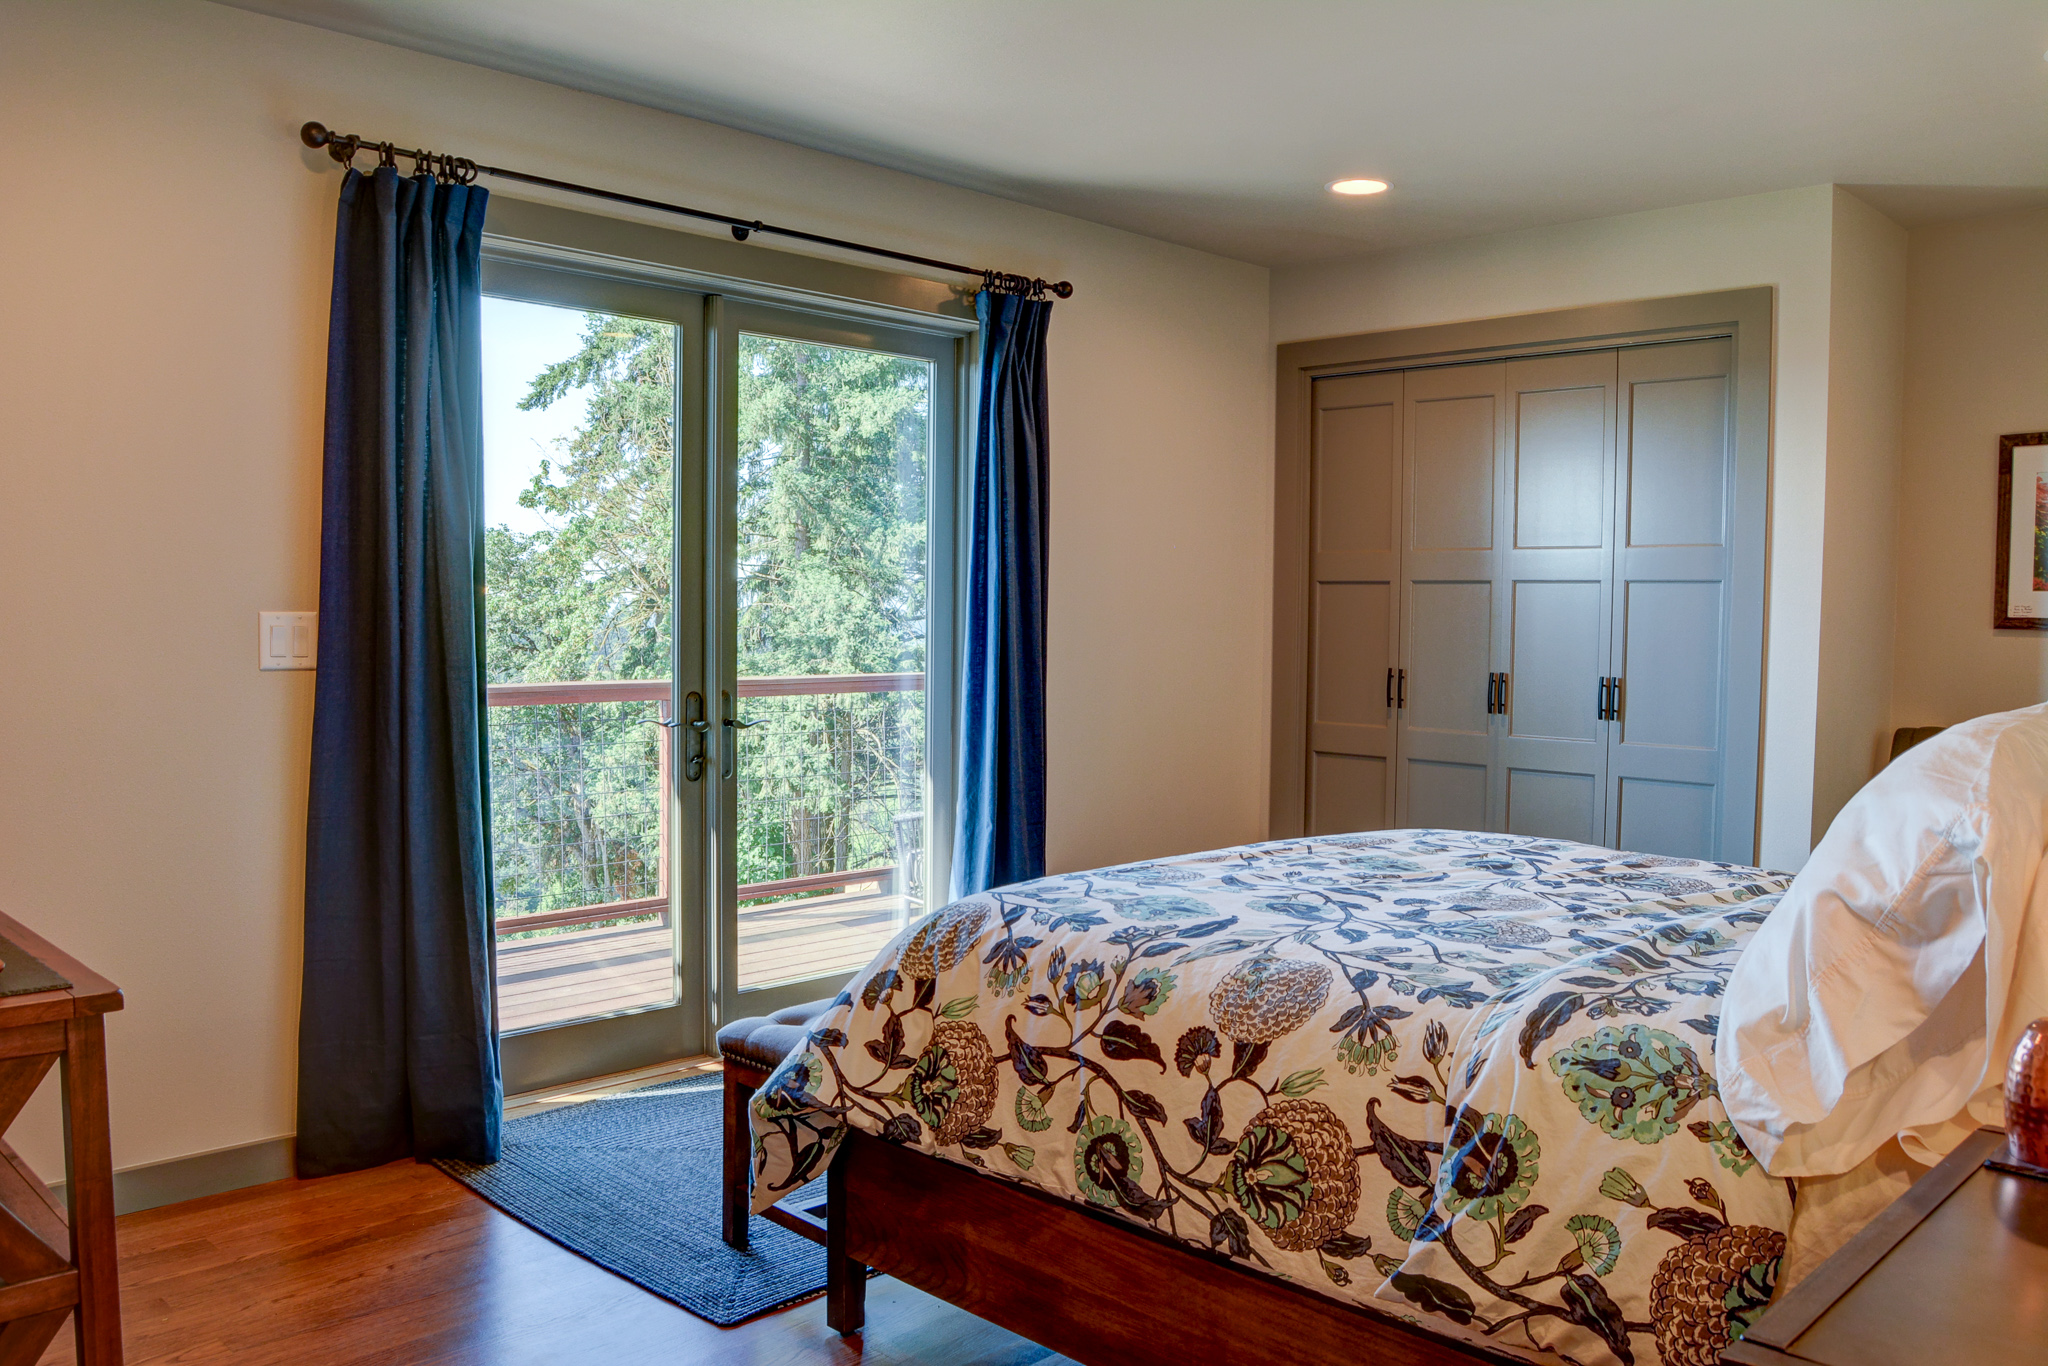 With a spacious closet and a stunning view, you can enjoy the valley from the comfort of a queen sized bed